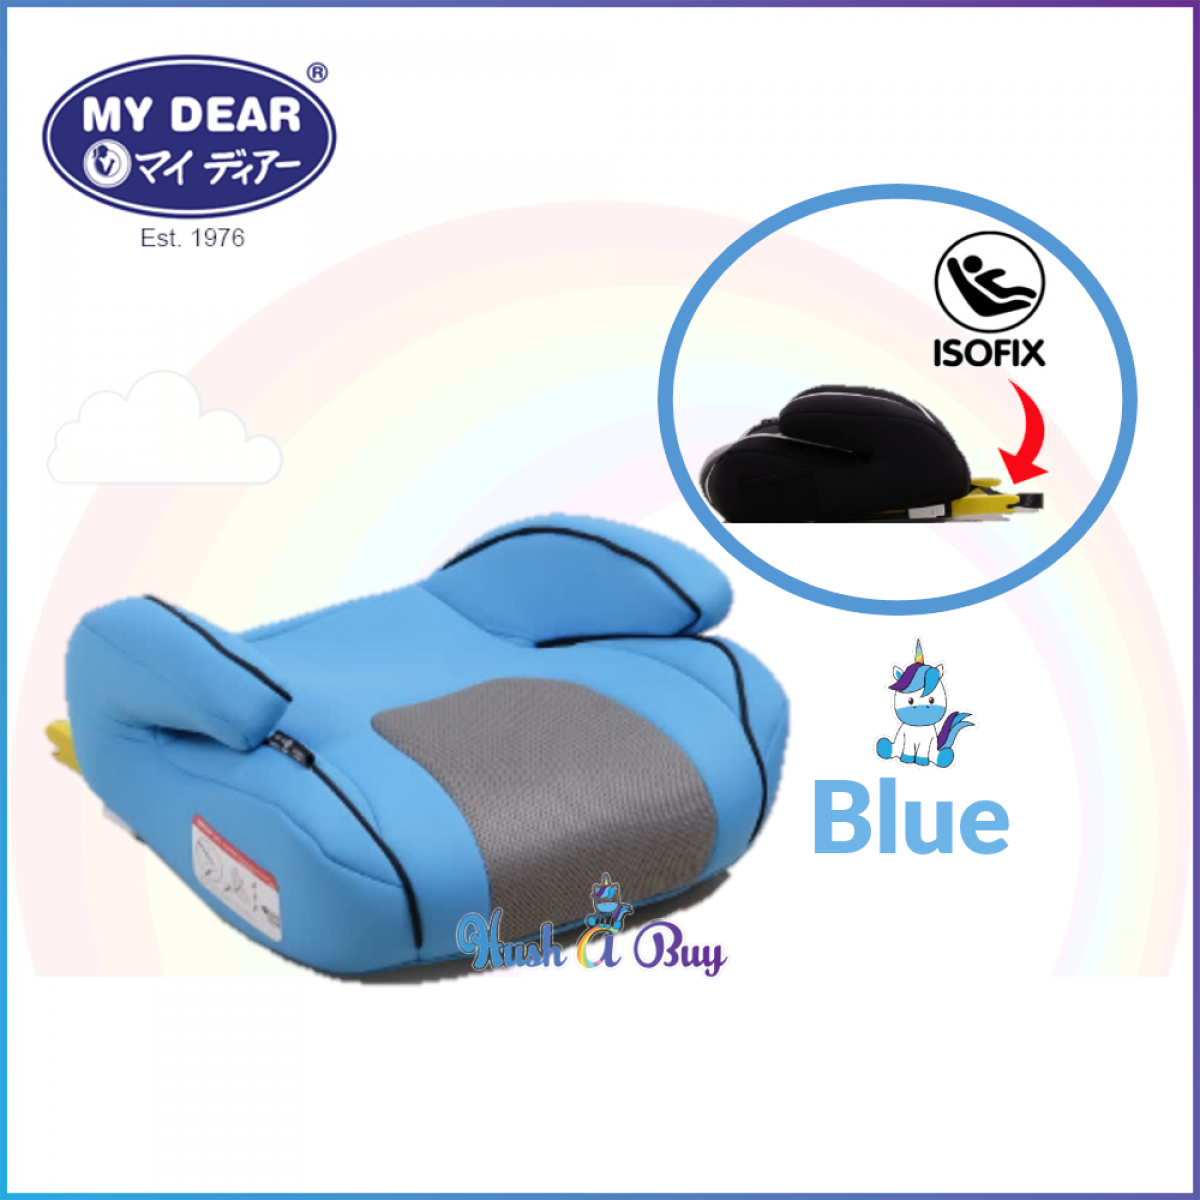 My Dear Booster Car Seat with ISOFIX